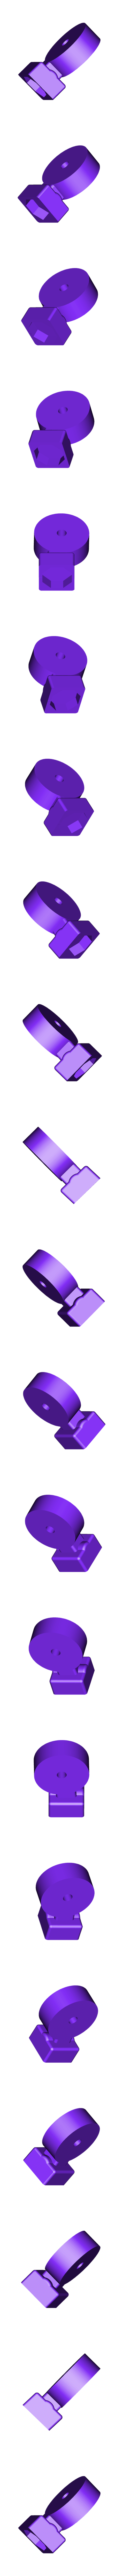 RotationClamp_and_MicStandConnector.stl Download free STL file MXL 4000 Shock Mount (Custom) • 3D printer object, ProteanMan